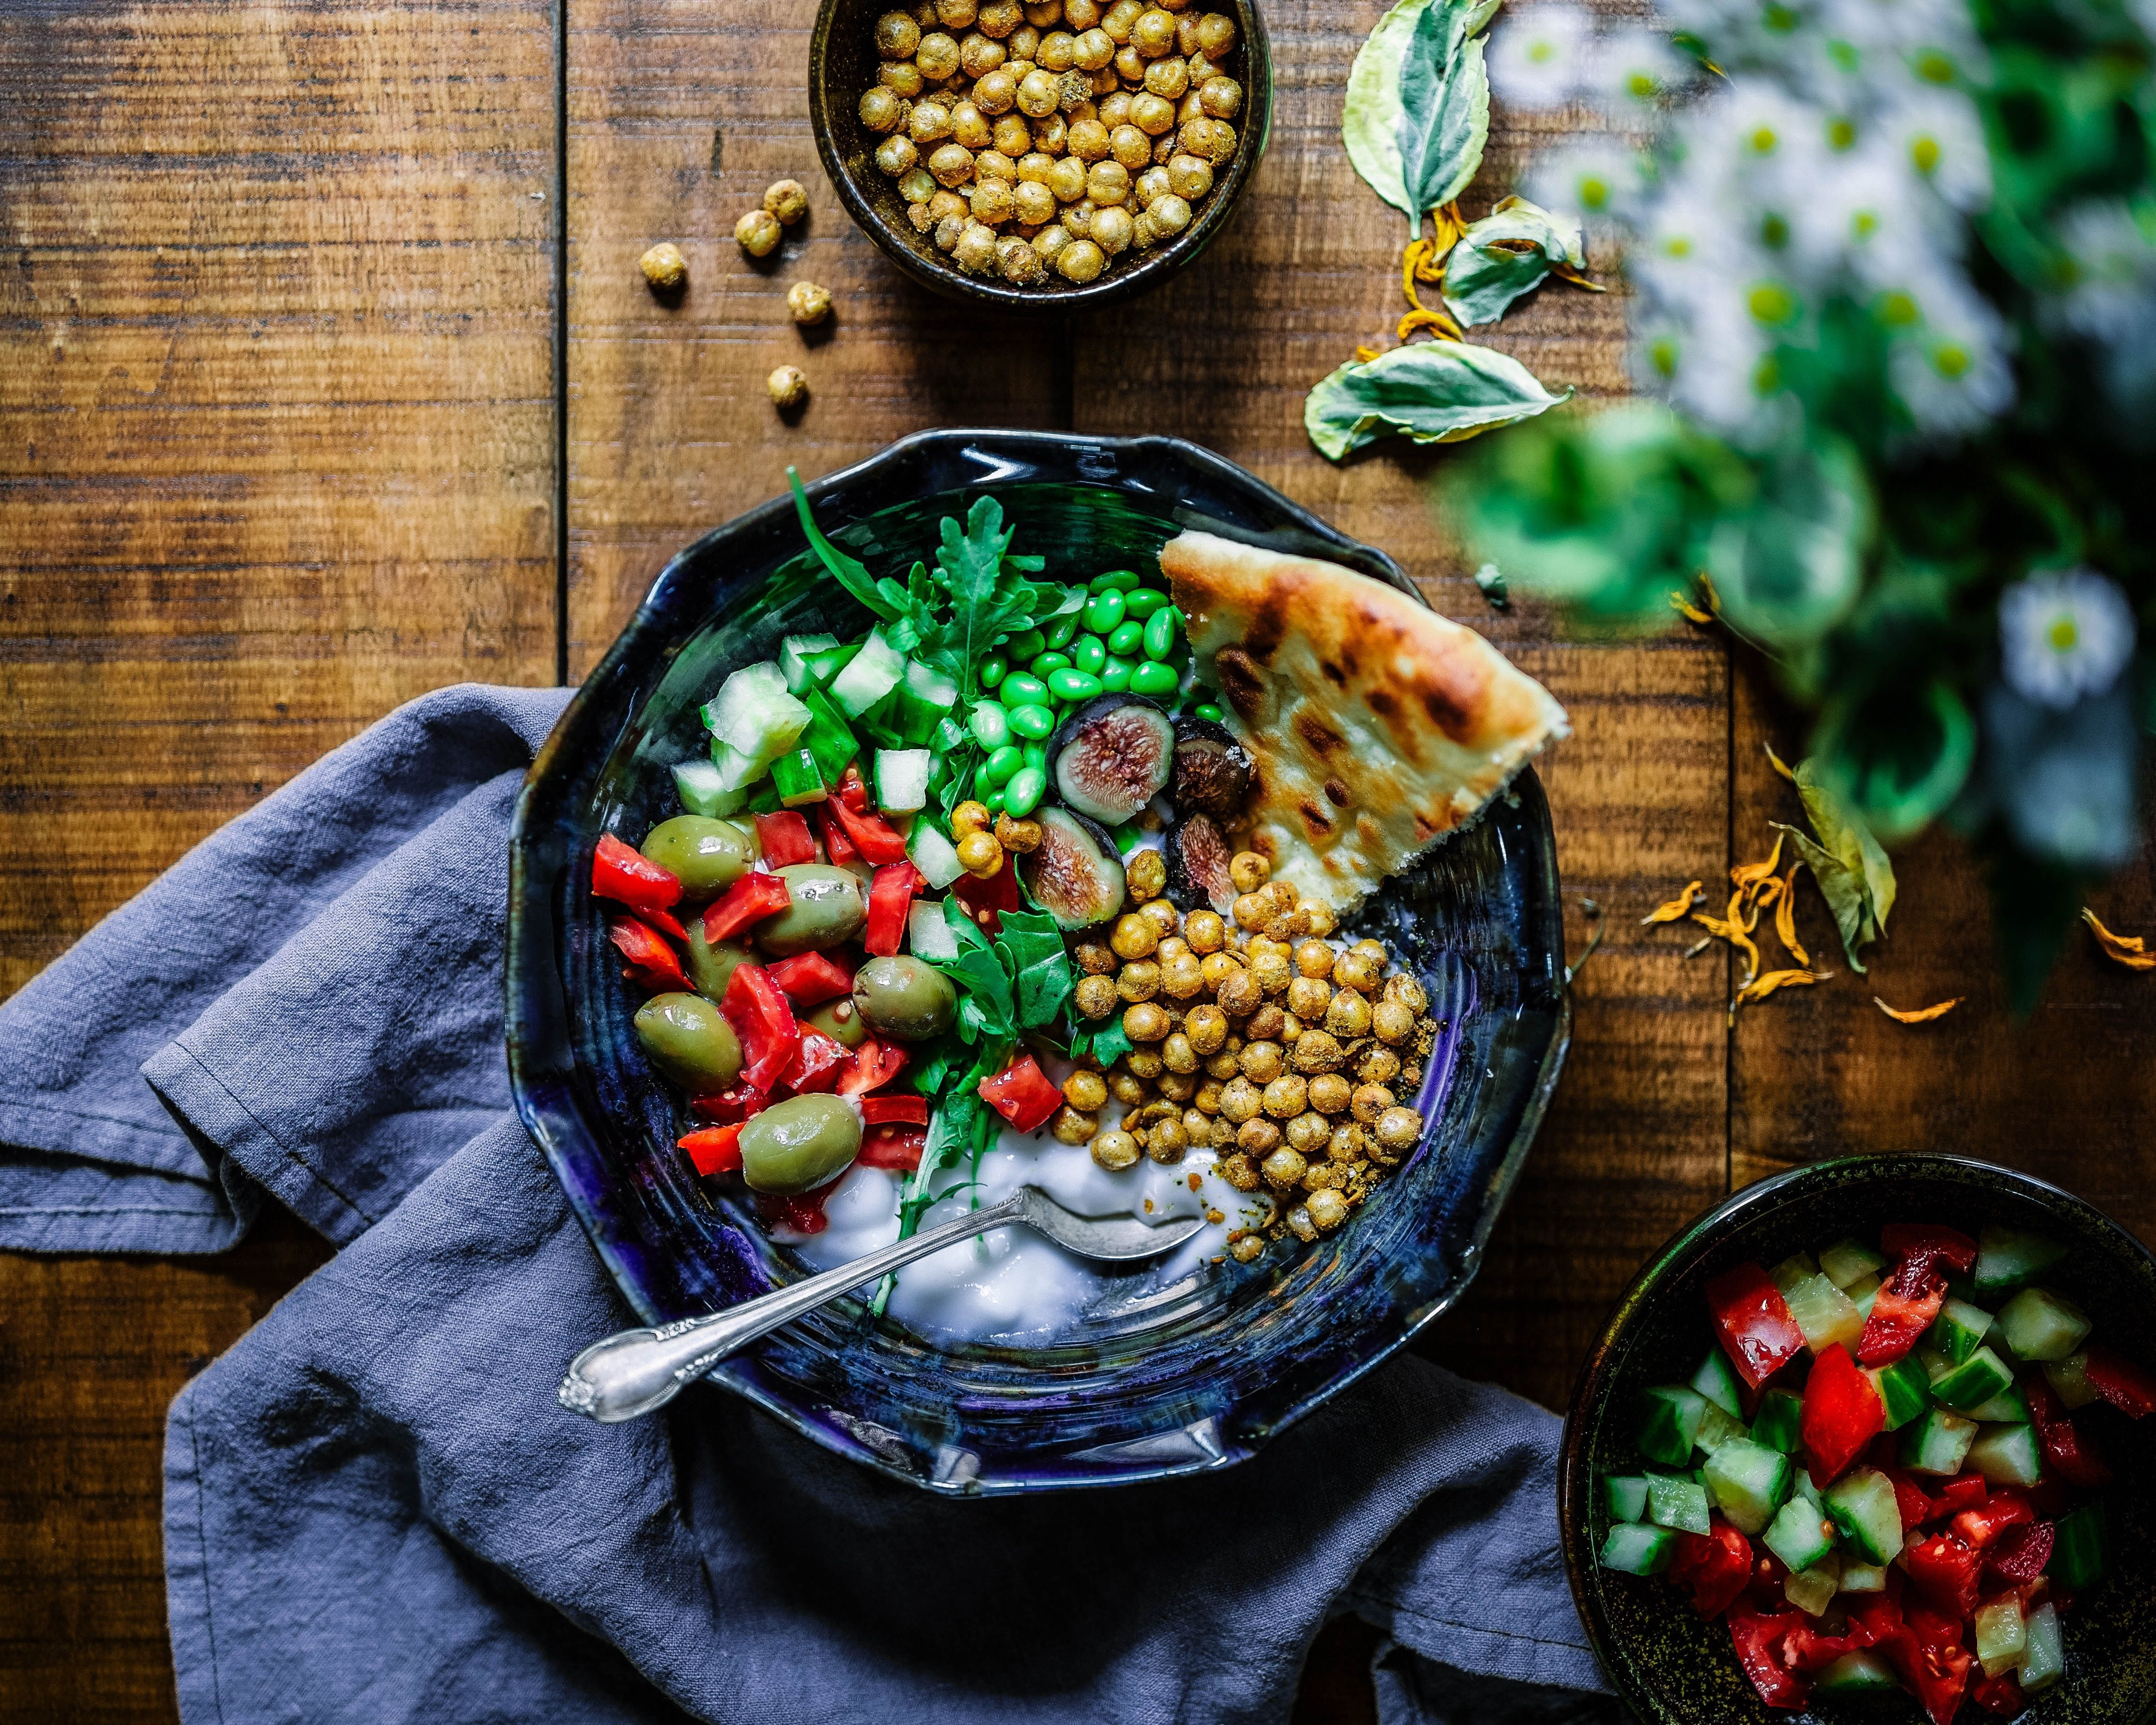 Nutrition Overload? Follow This One Tip for a Healthy Sustainable Diet